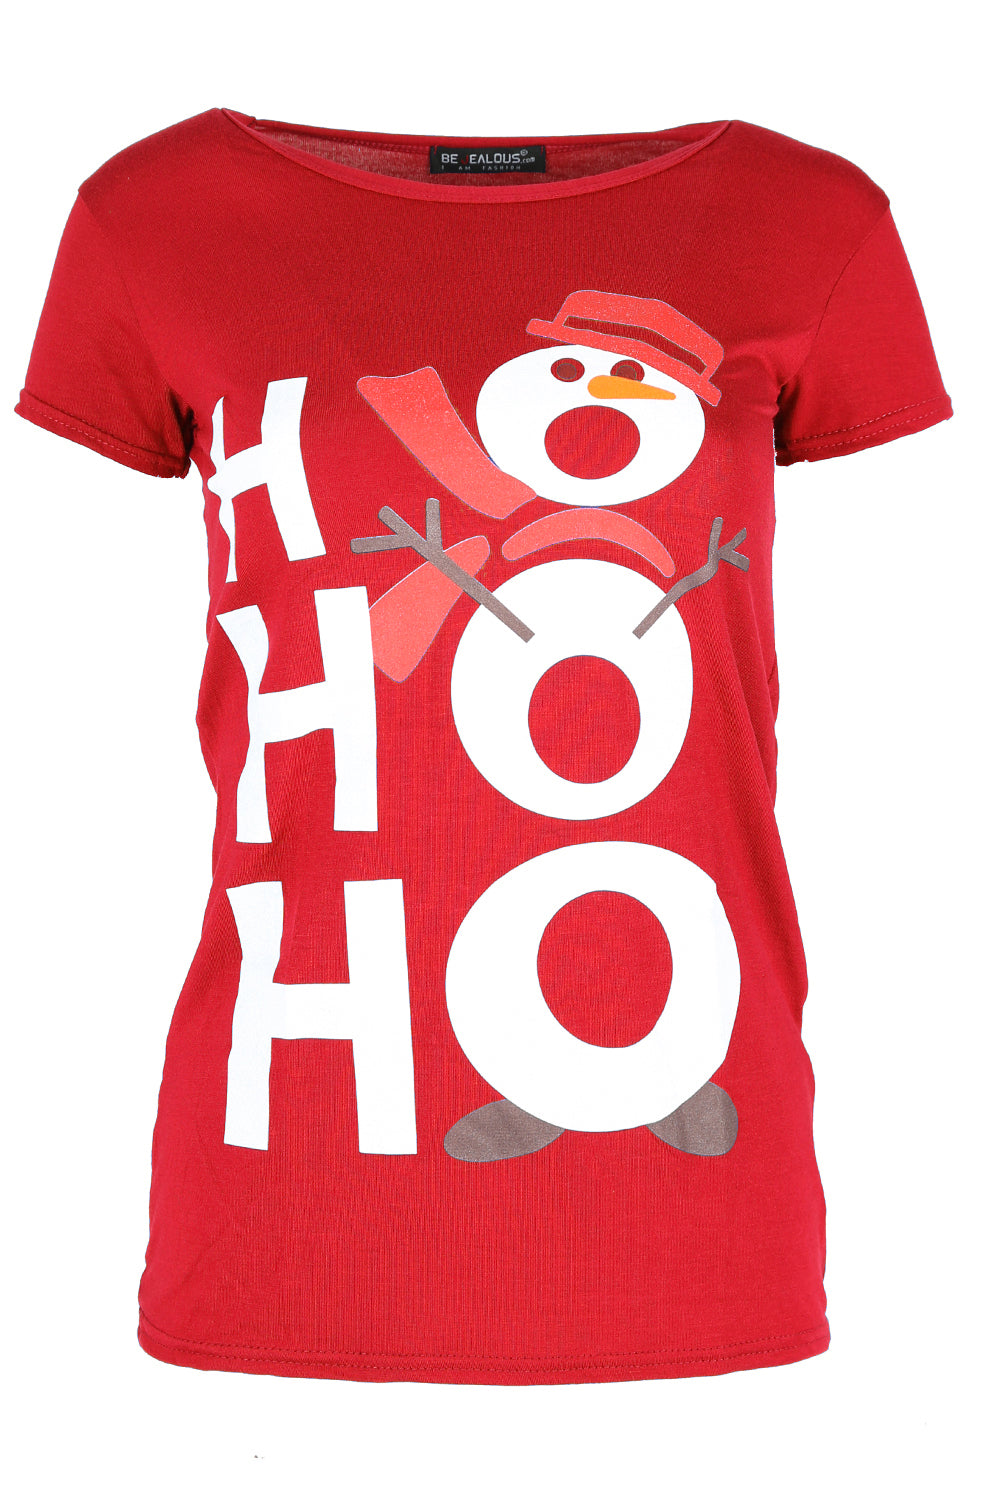 'Hohoho' Snowman Print Blue Christmas Top